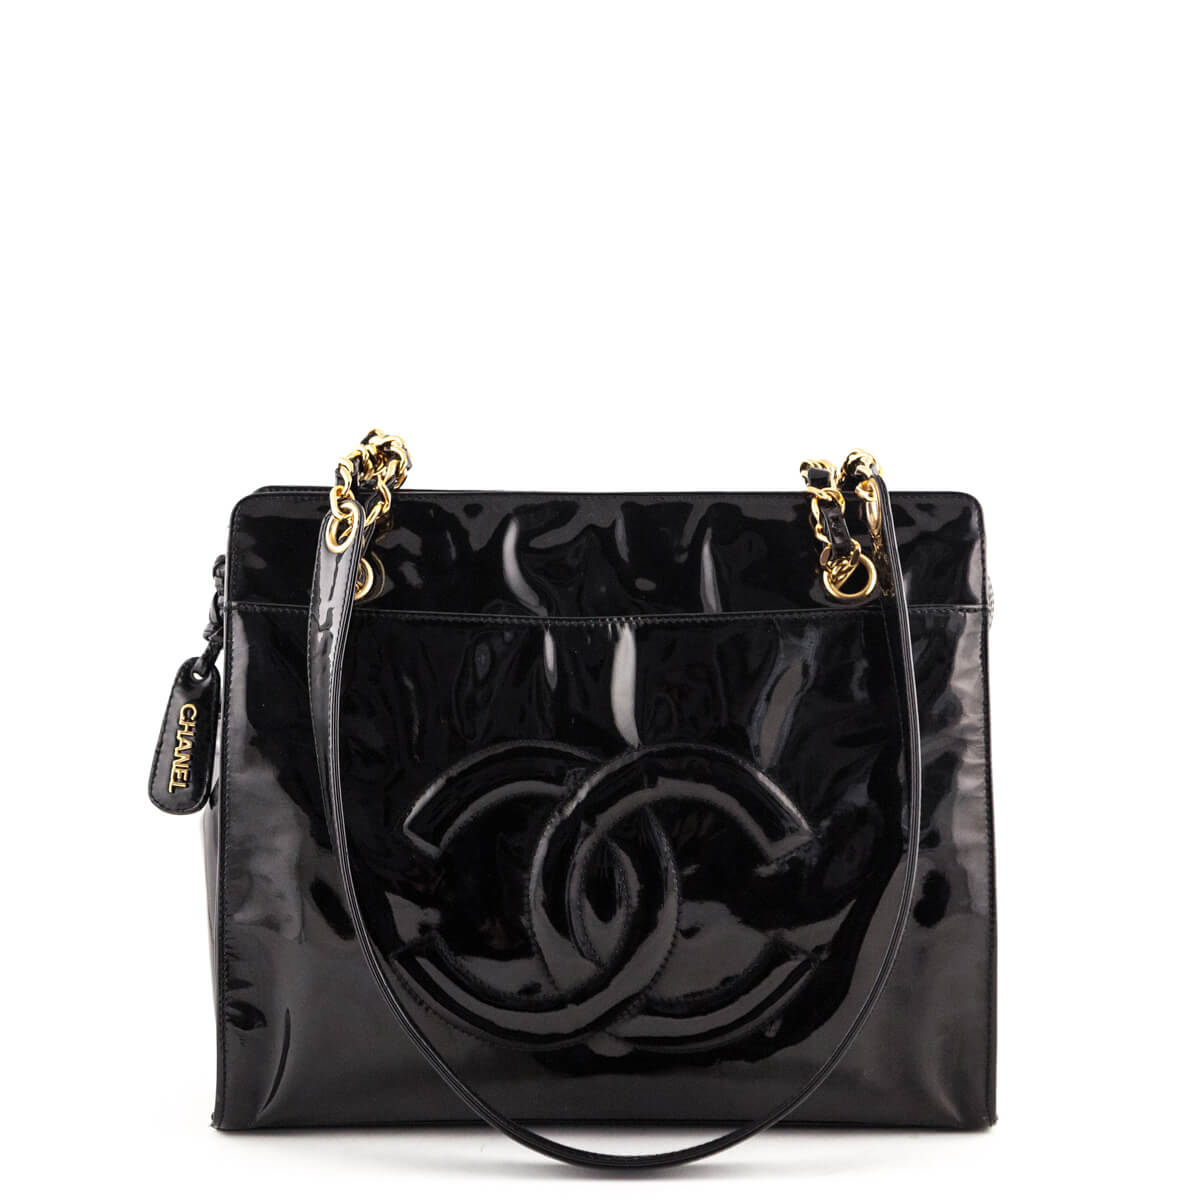 13540cab32b7 Chanel Black Patent Vintage Timeless CC Tote - LOVE that BAG - Preowned  Authentic Designer Handbags ...